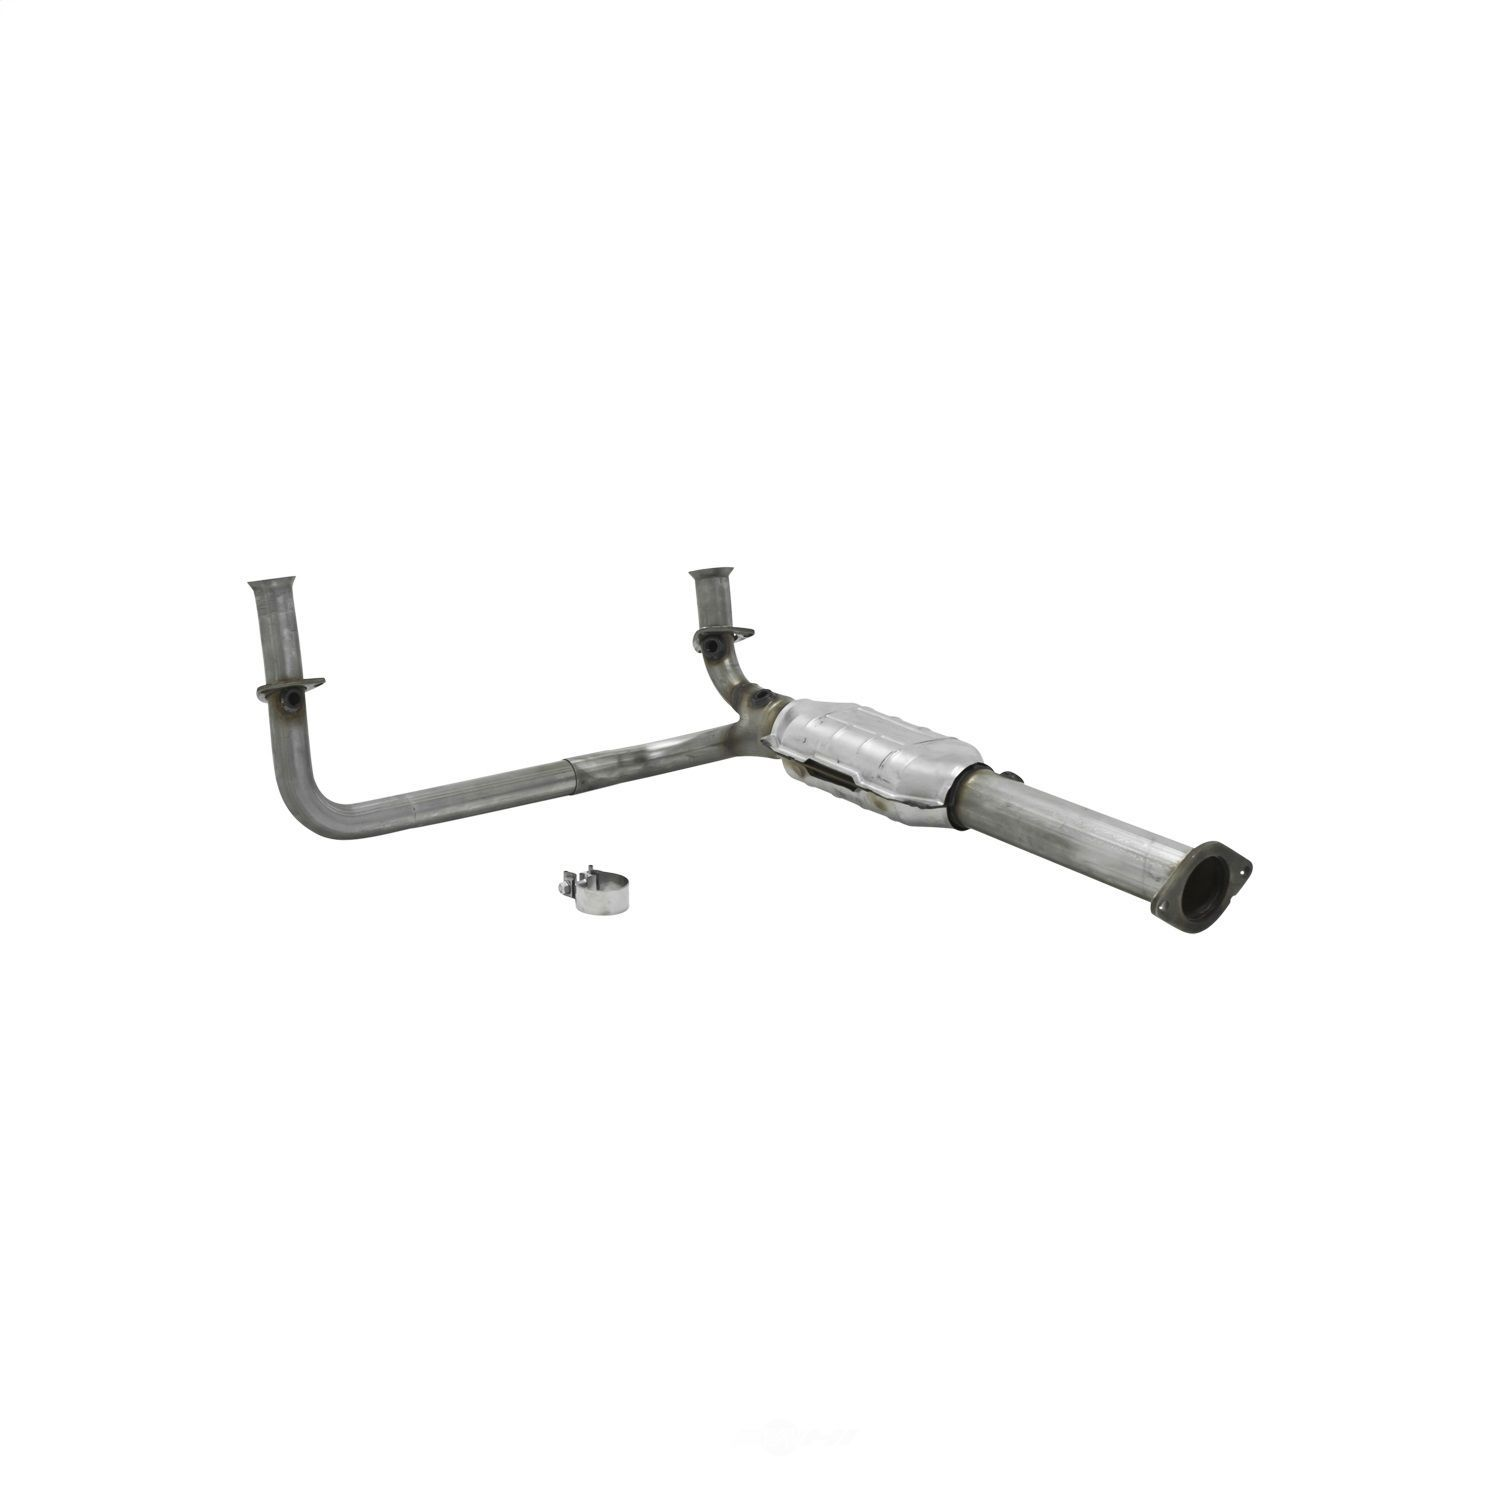 FLOWMASTER - Direct Fit Catalytic Converter - FLO 2010022